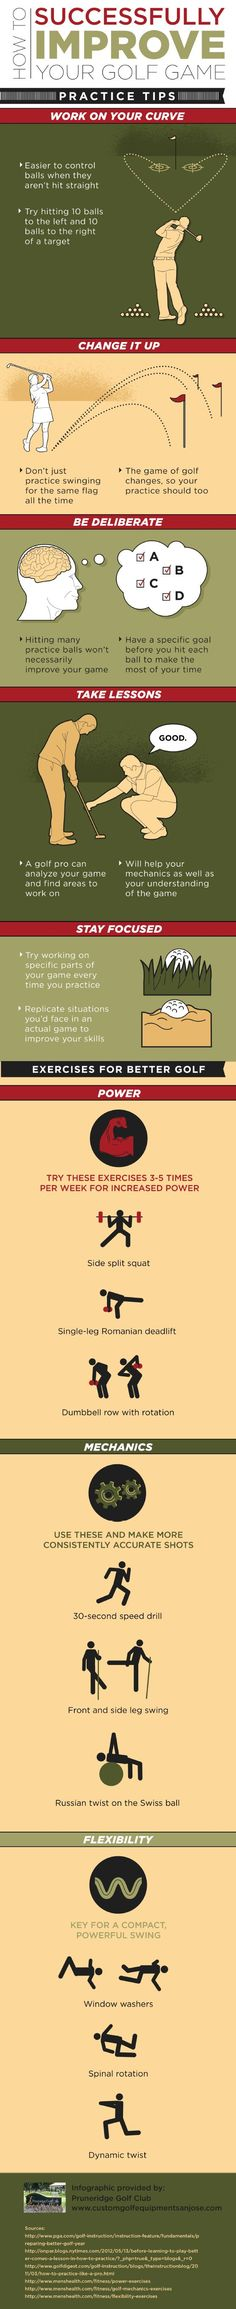 It is easier to control golf balls when they aren't hit straight. That is why it is important to work on your curve! Find more tips for improving your golf game by reading through this infographic!